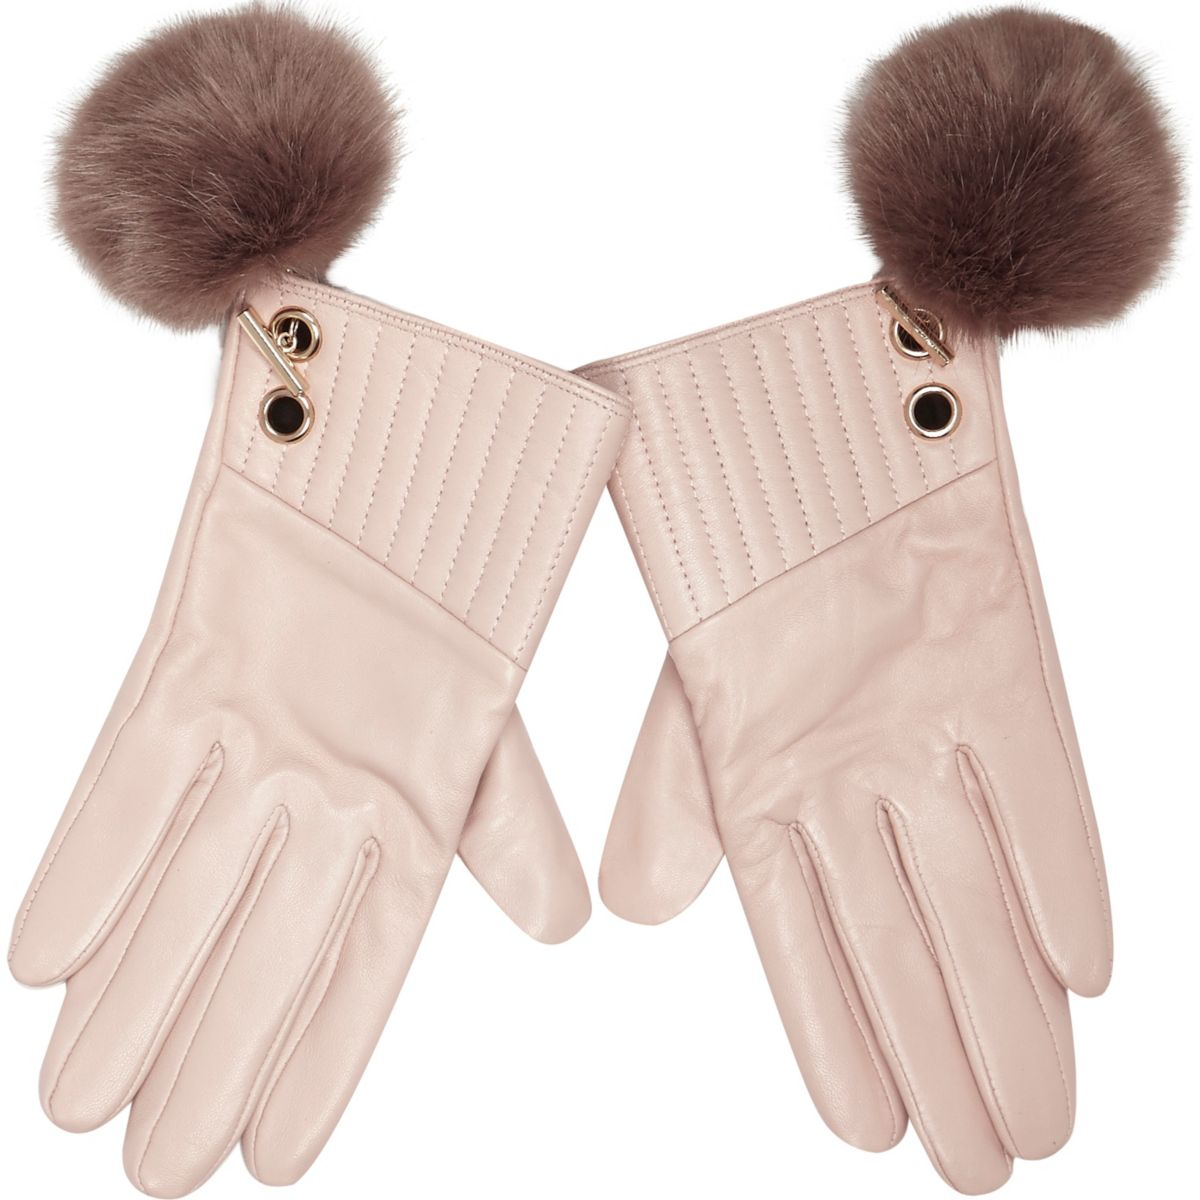 Light pink leather pom pom gloves